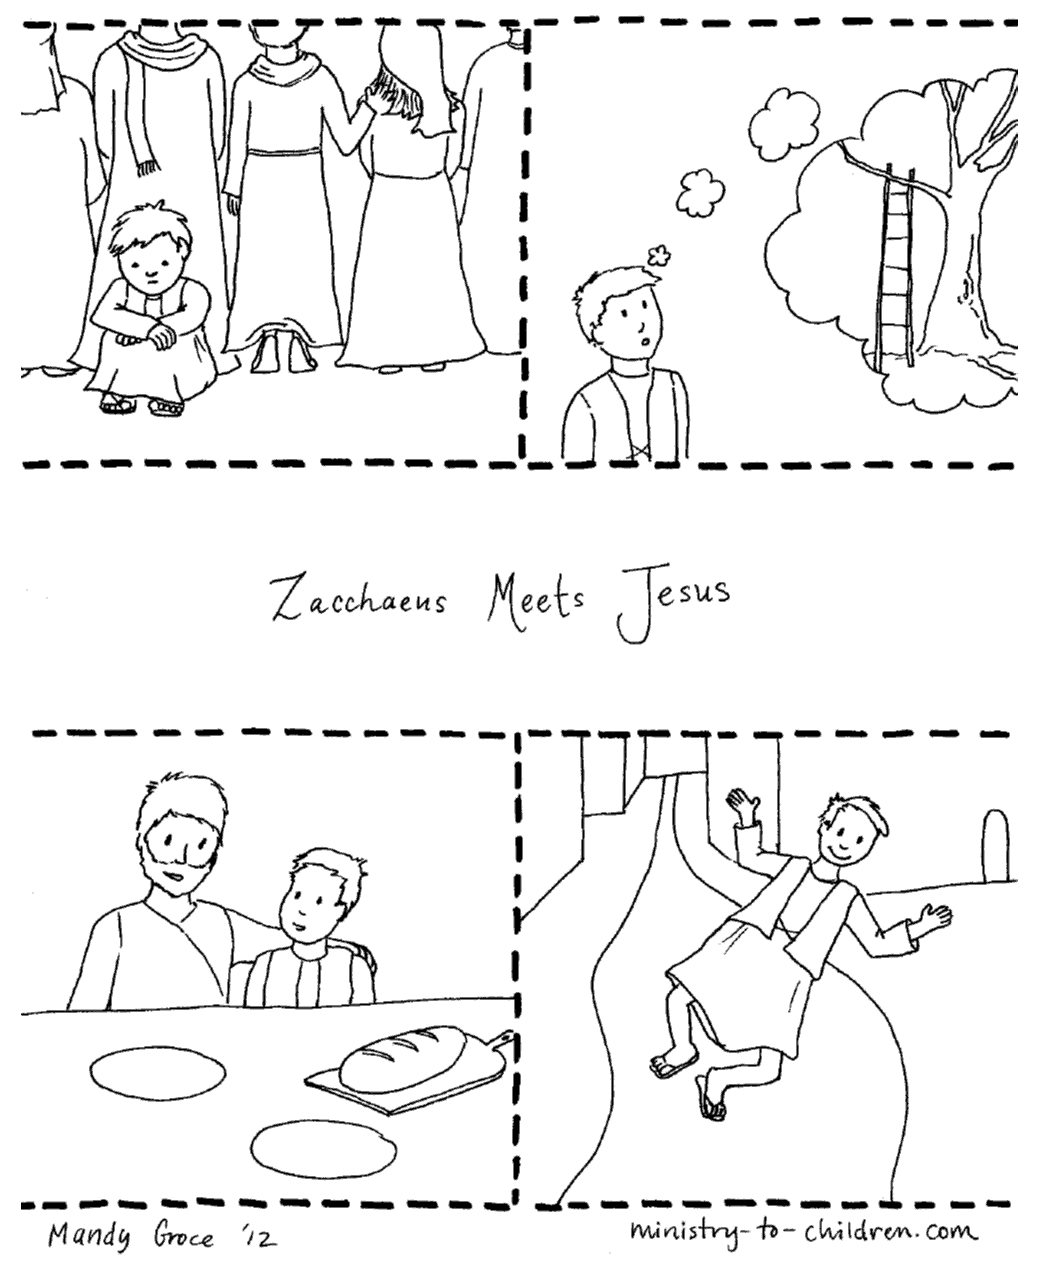 pin zacchaeus colouring pages page 2 on pinterest